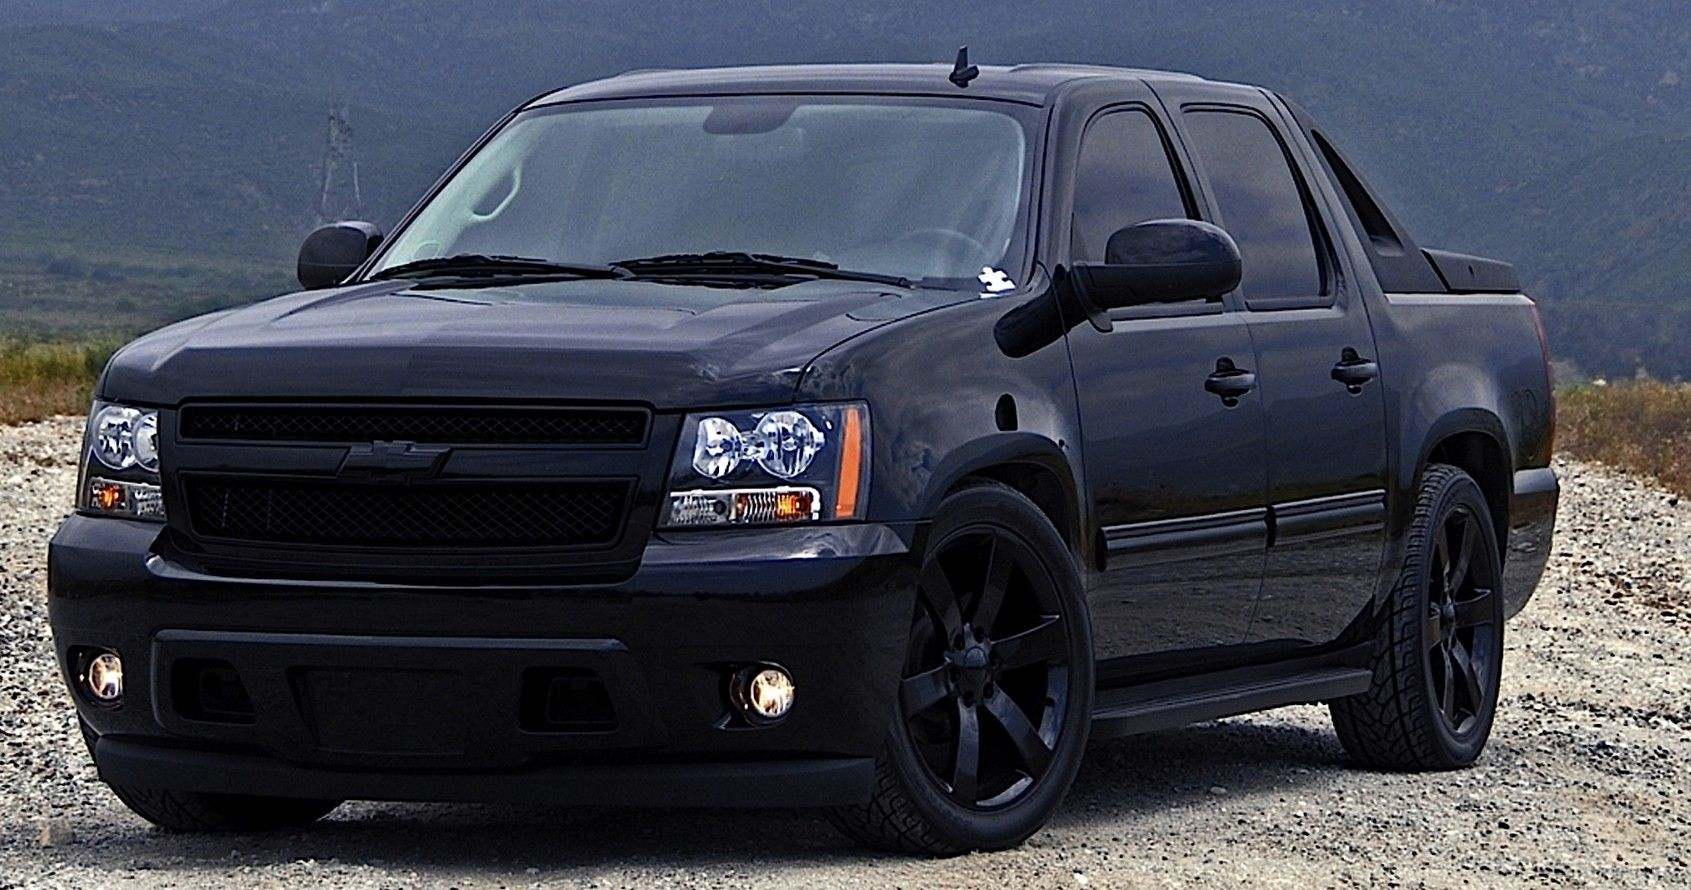 Avalanche chevy avalanche 2014 : Customized Chevrolet Avalanche | Awesome Rides | Pinterest ...